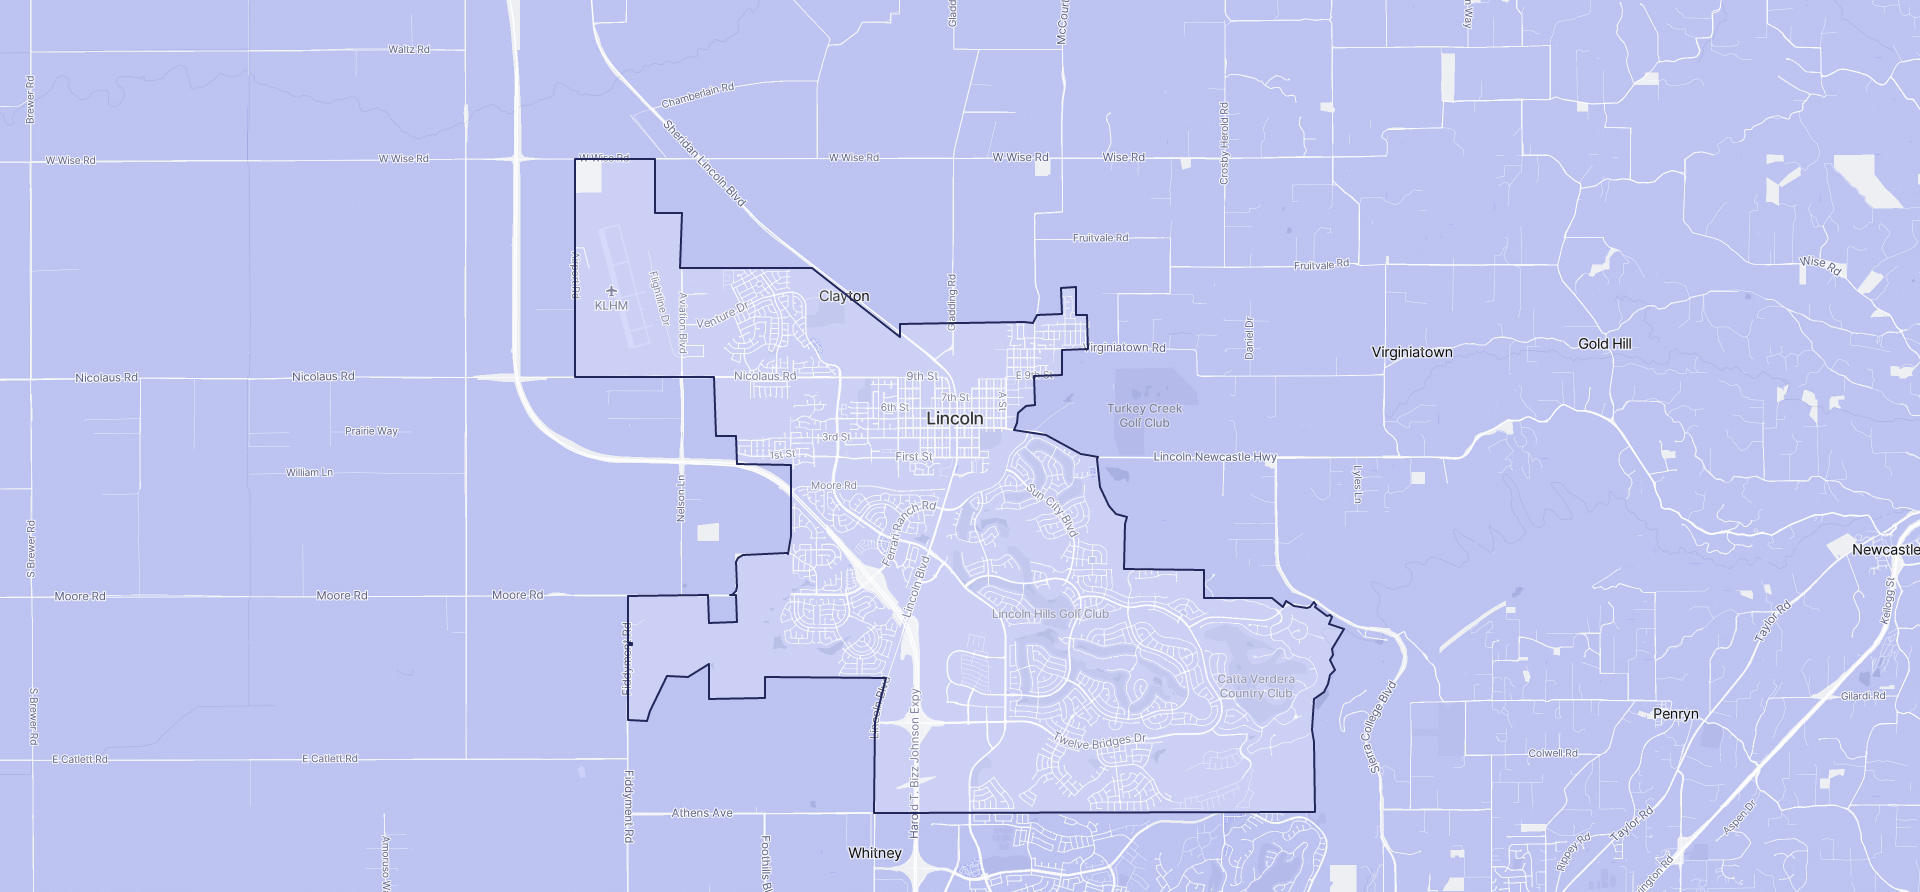 Image of Lincoln boundaries on a map.